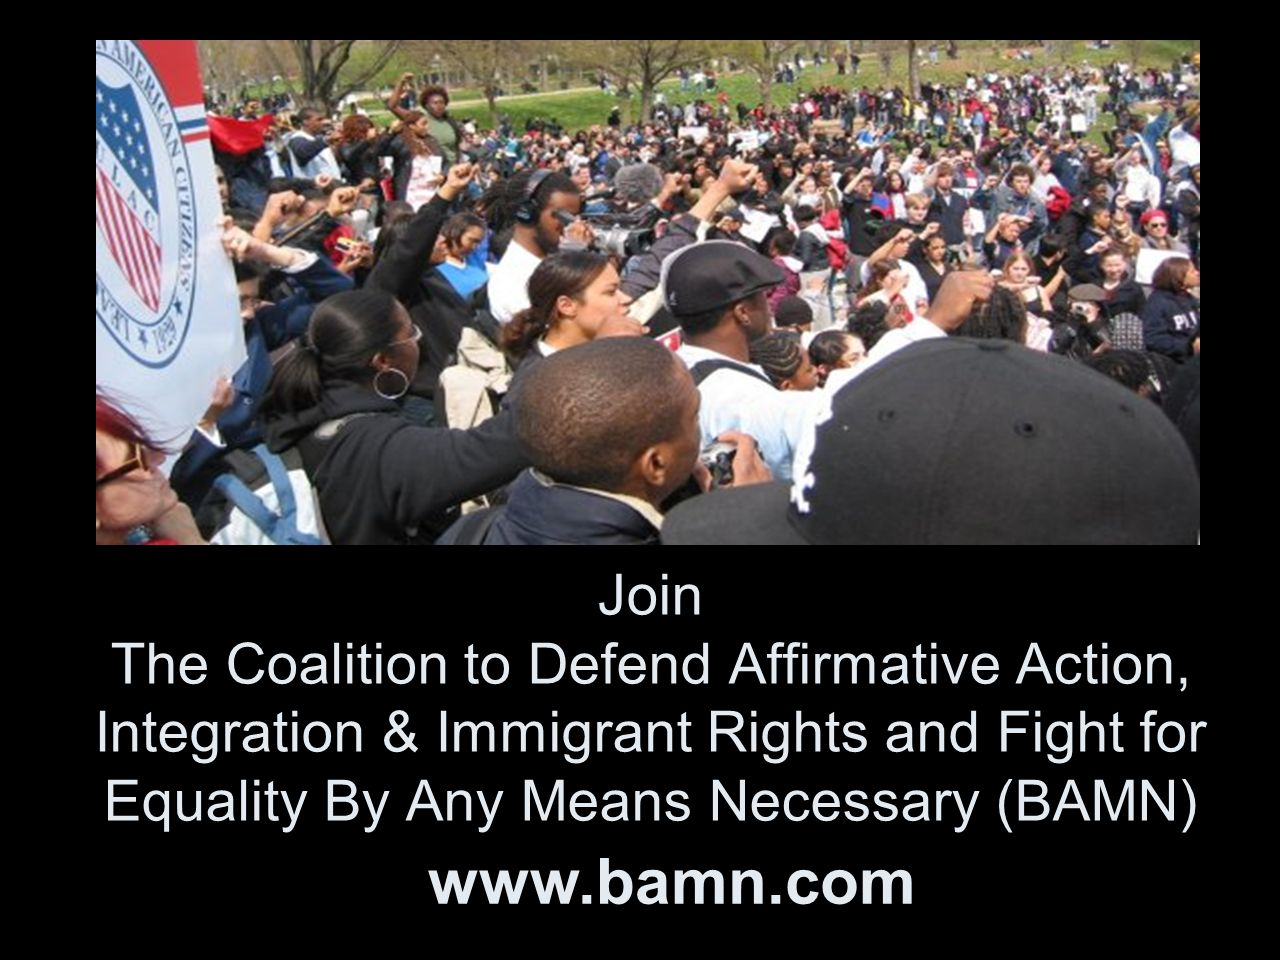 Join The Coalition to Defend Affirmative Action, Integration & Immigrant Rights and Fight for Equality By Any Means Necessary (BAMN) www.bamn.com